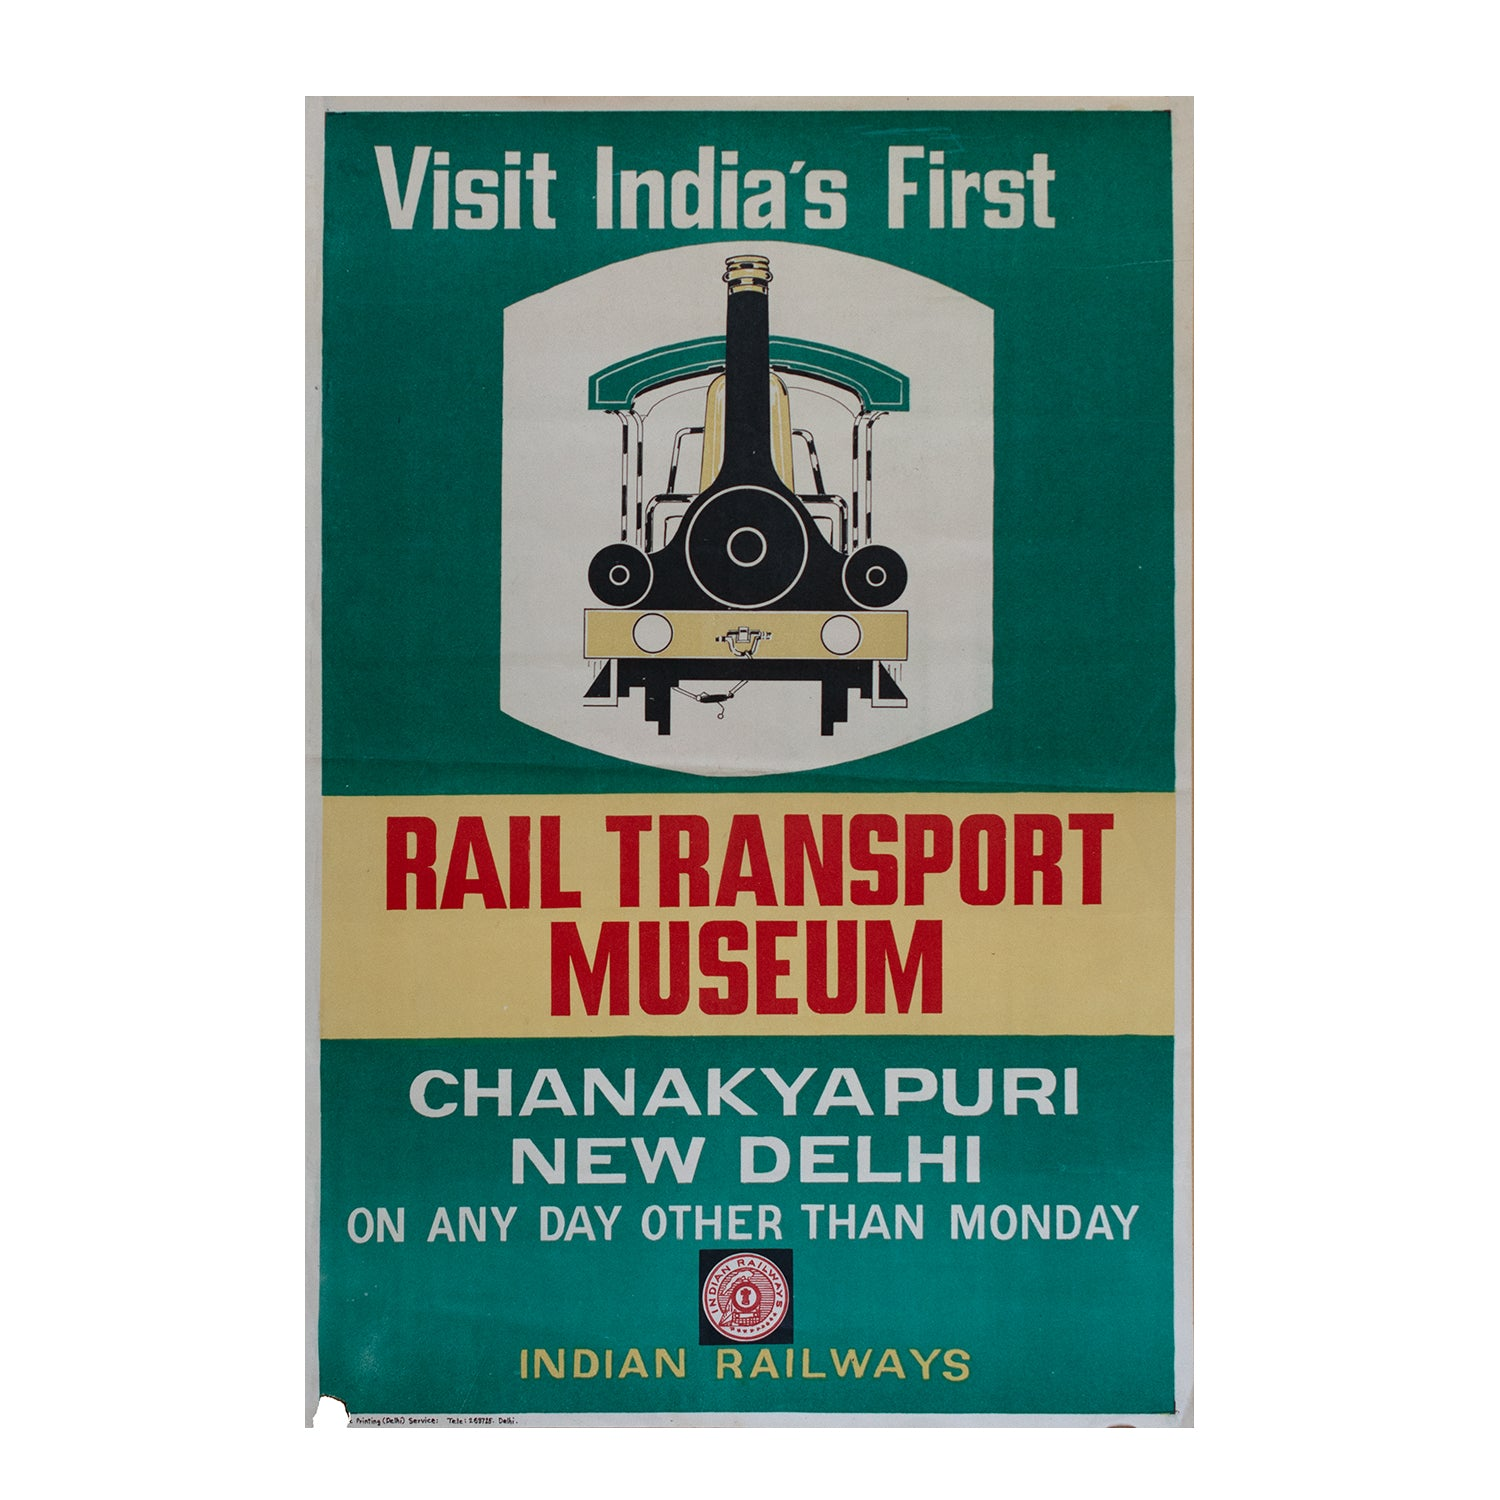 Visit India's First Rail Transport Museum